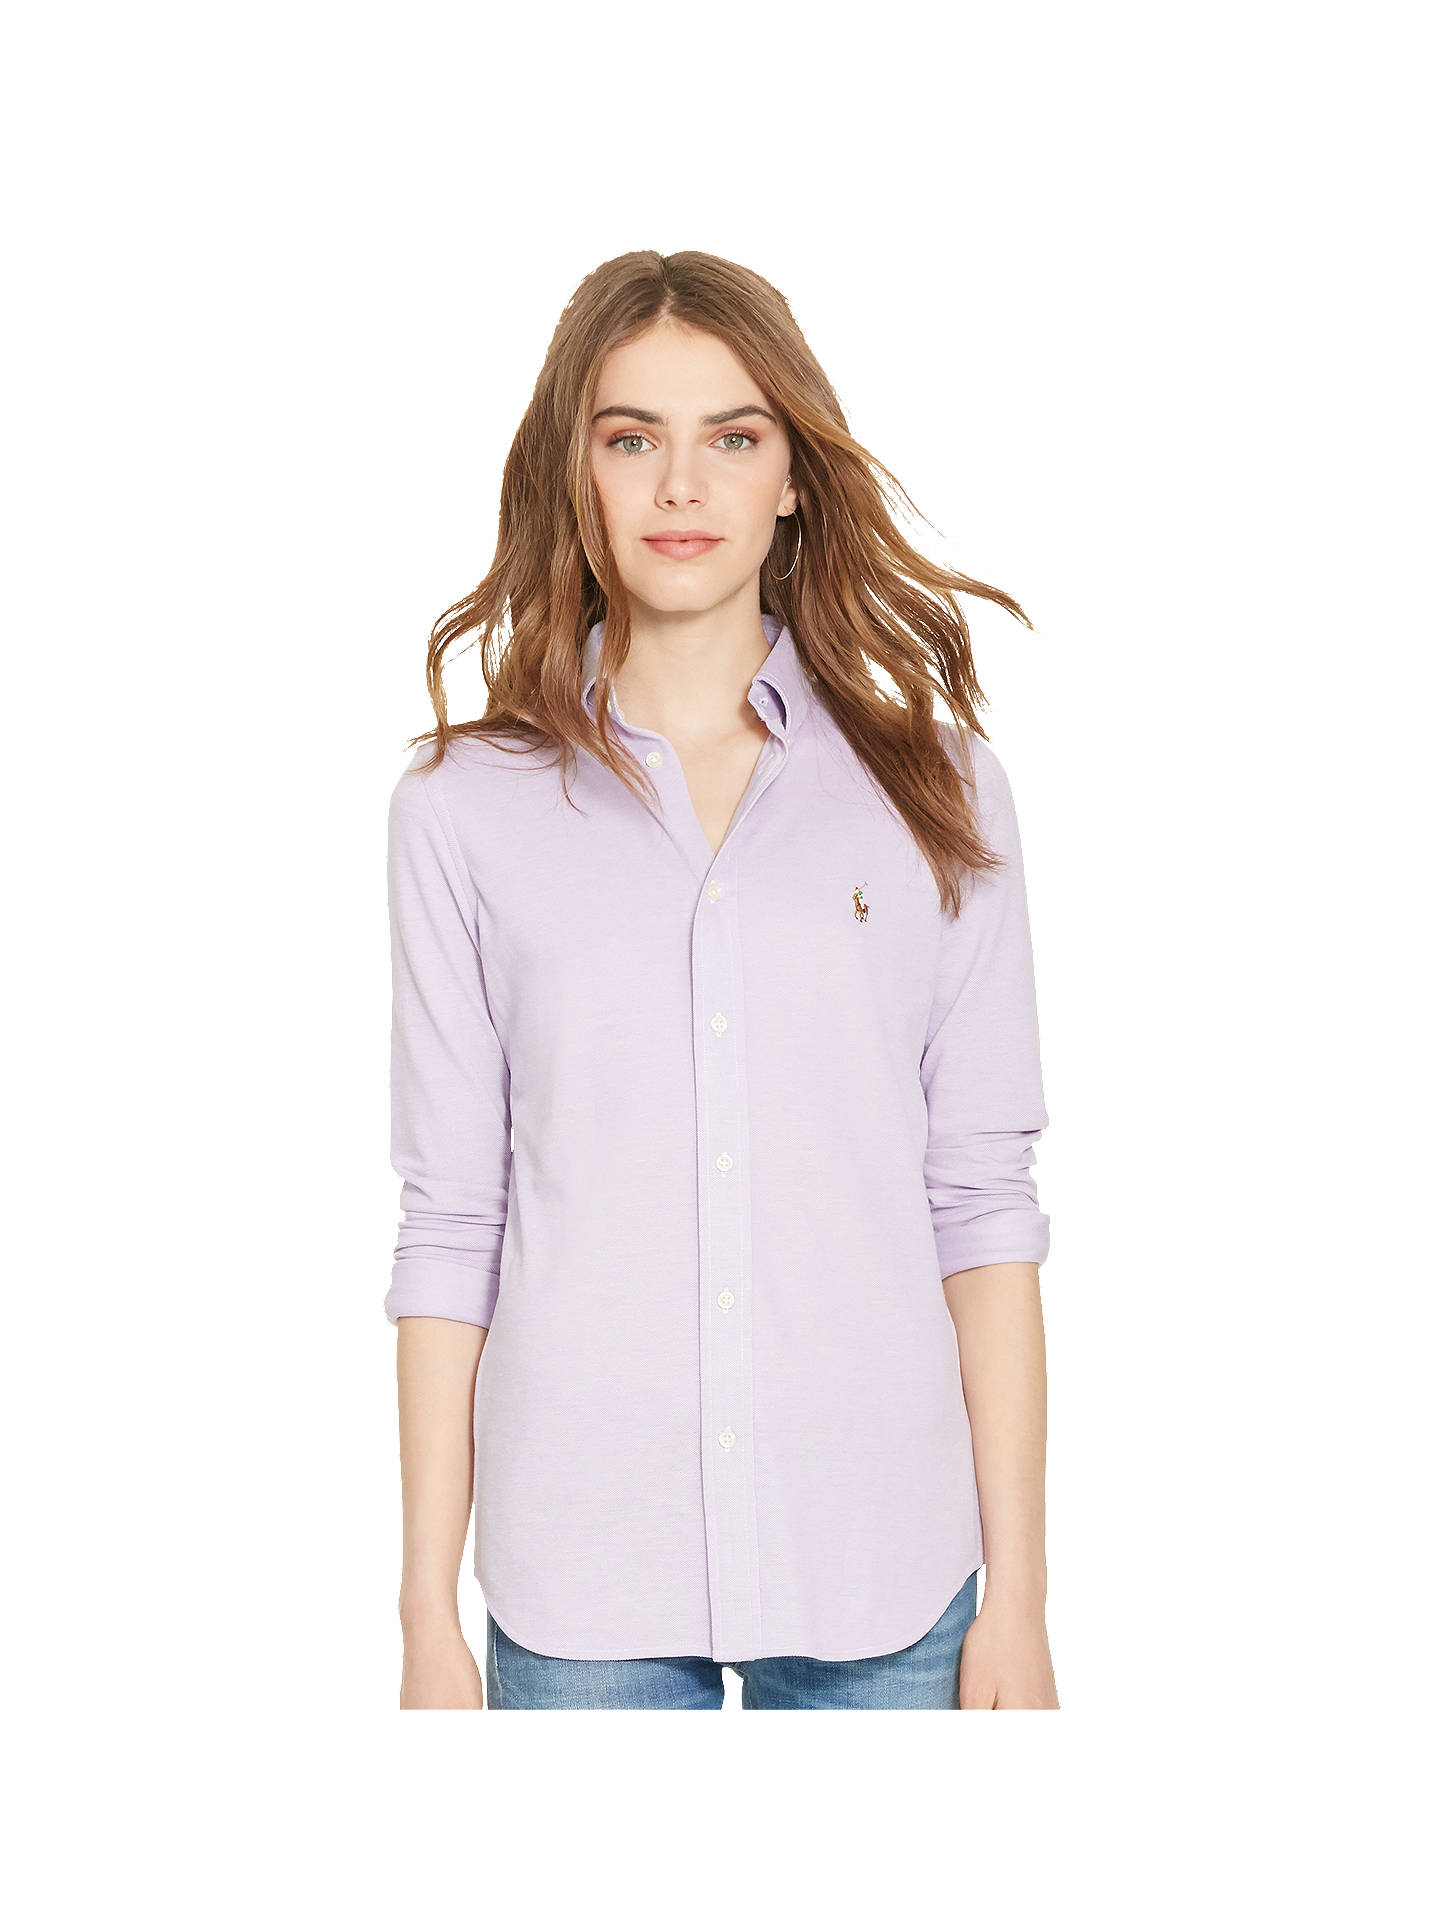 8d9b29bc03f Buy Polo Ralph Lauren Heidi Stretch Shirt, New Lavender, XS Online at  johnlewis.